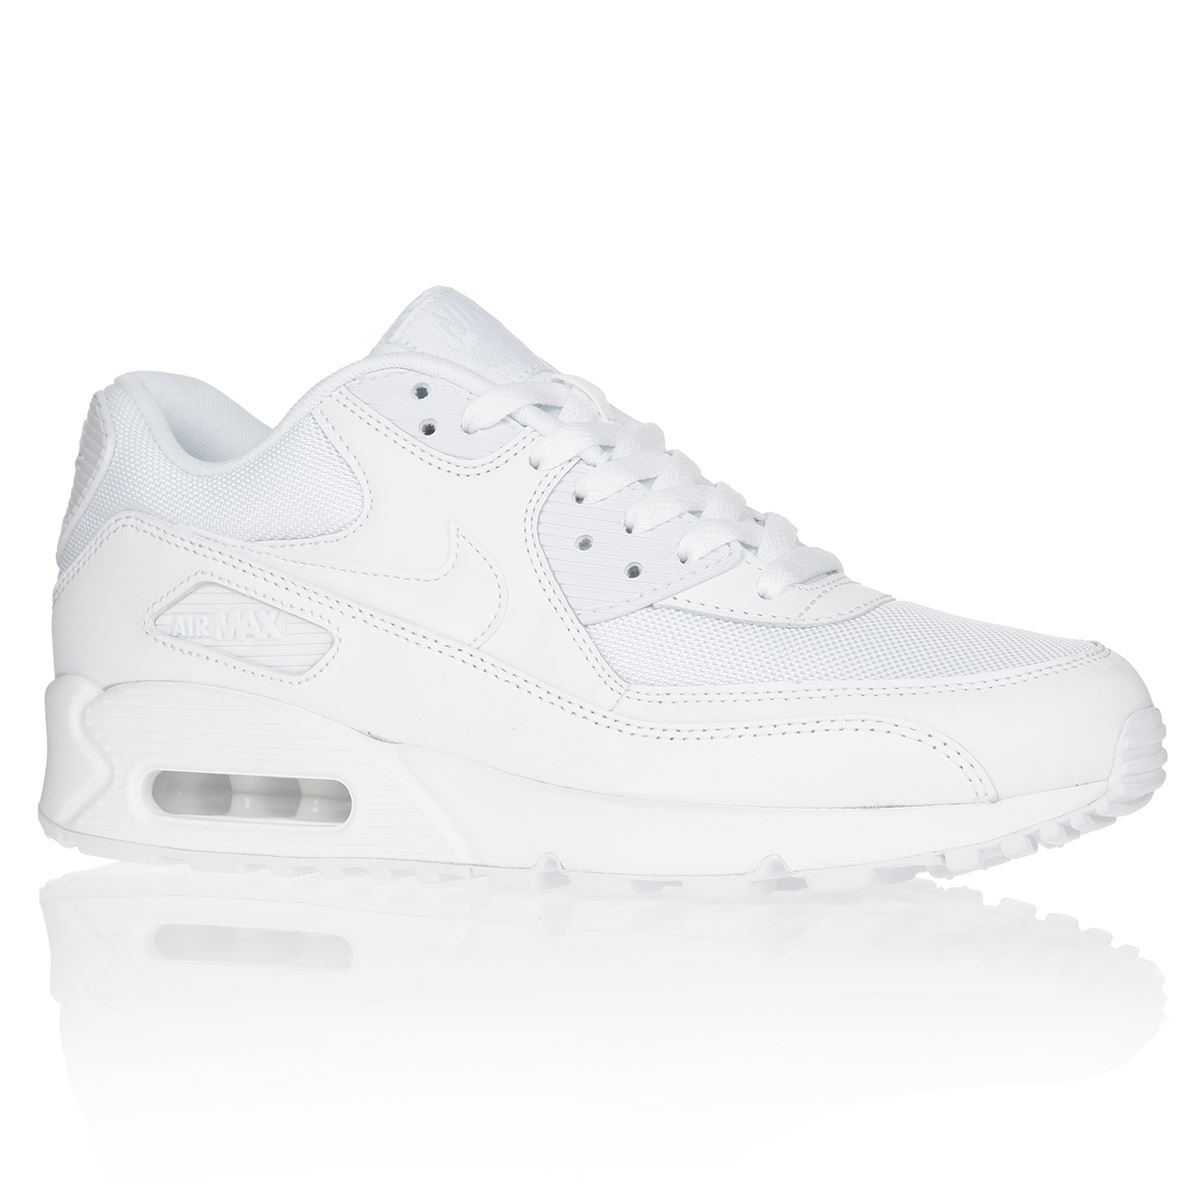 wholesale dealer f7be2 83135 air max 90 blanche 38 SKU- u64